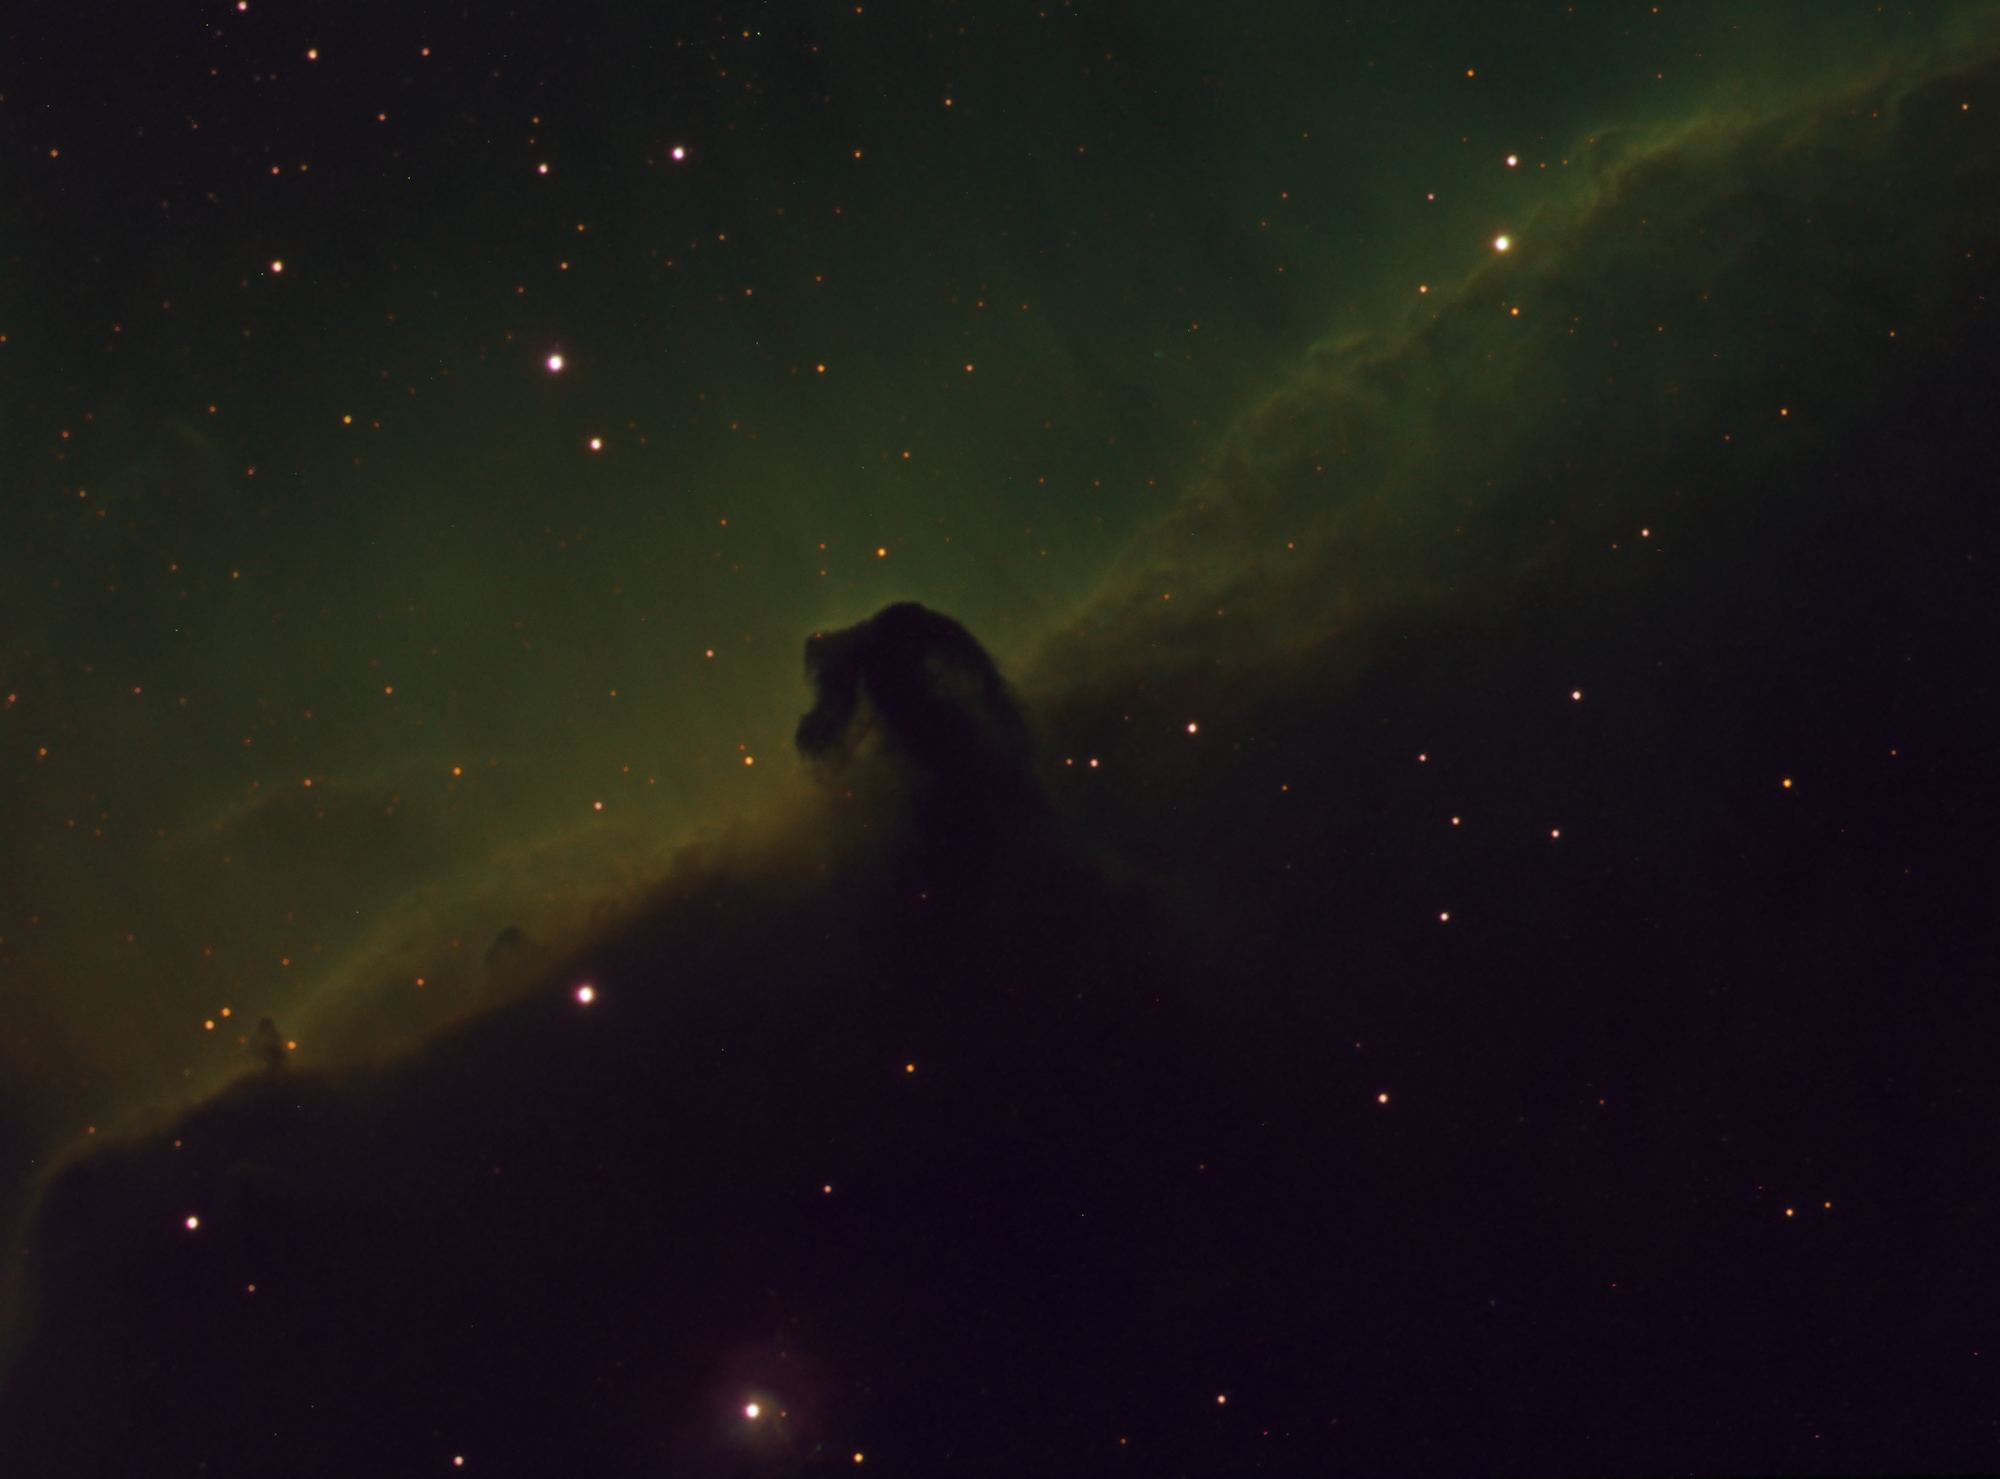 IC434_Hubble_2019_web.jpg